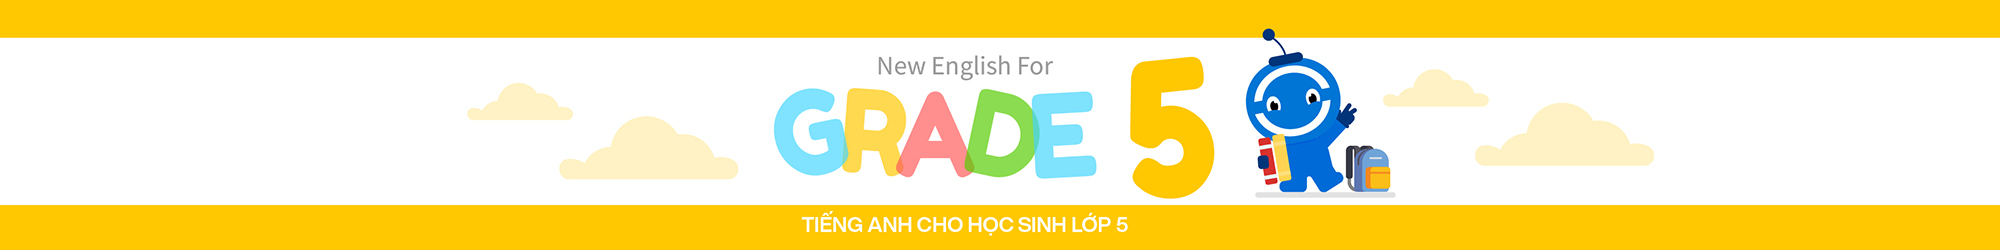 NEW ENGLISH FOR GRADE 5